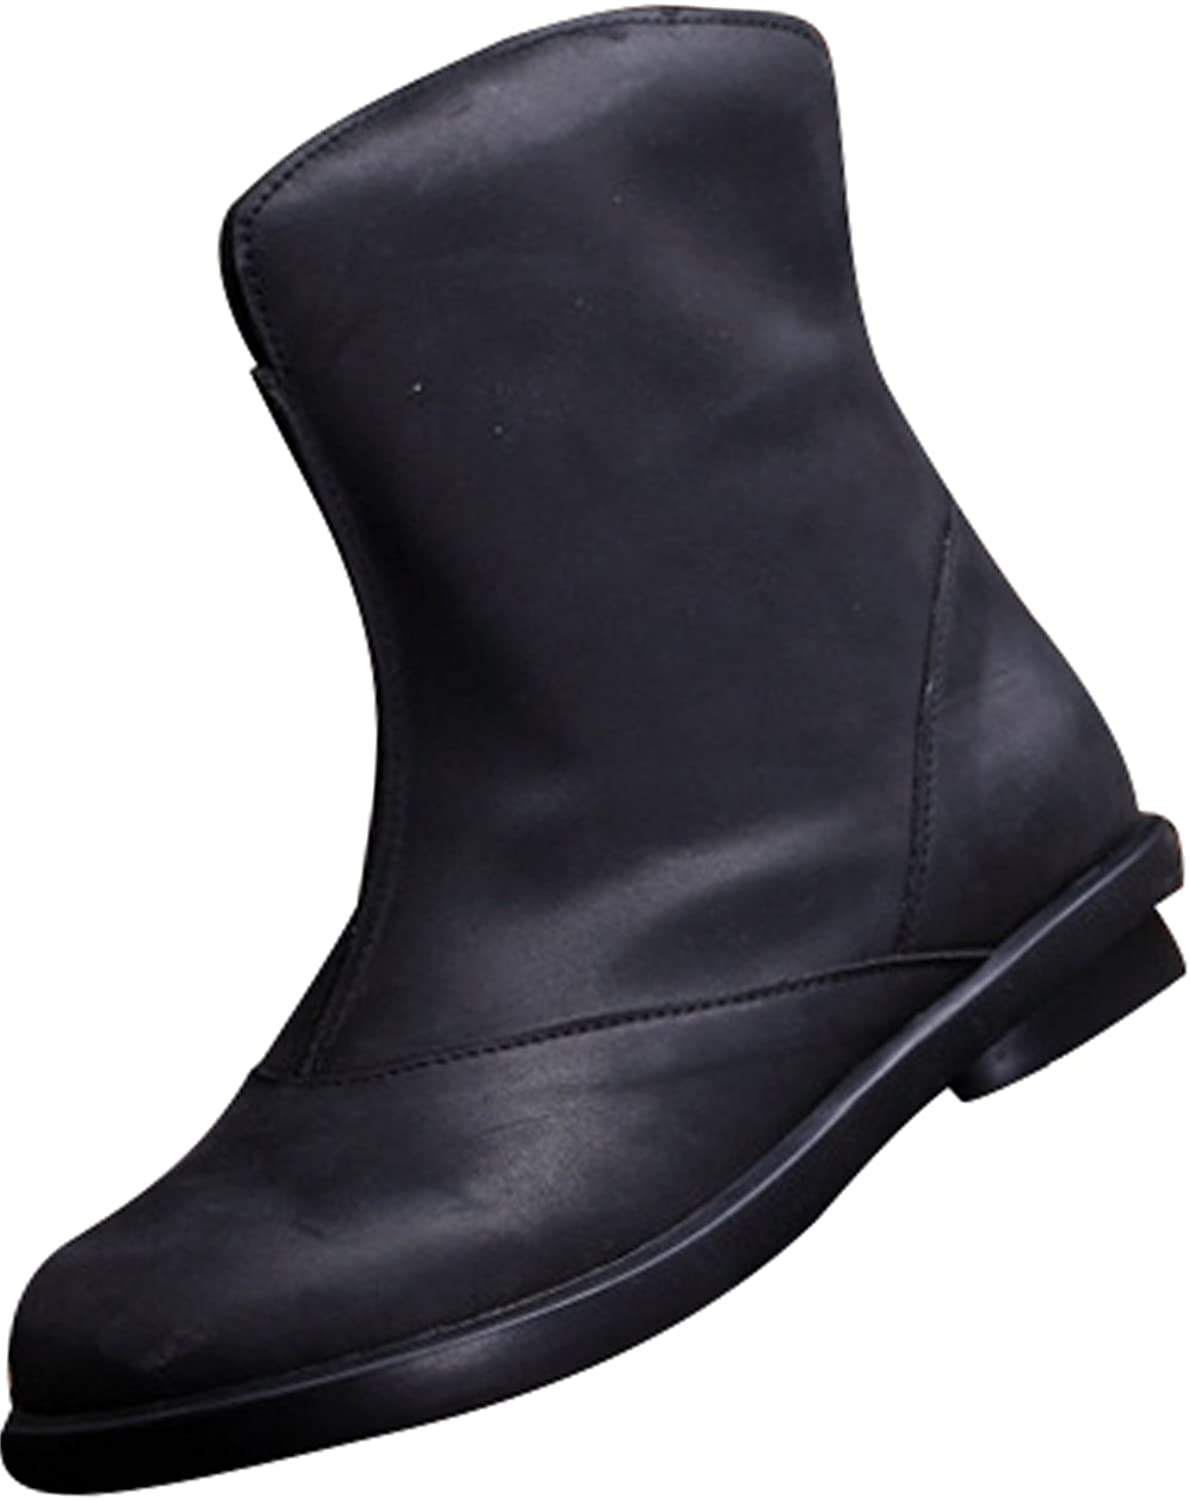 Zoulee Women's Autumn Winter Leather Flat Short Boots Warm Boots